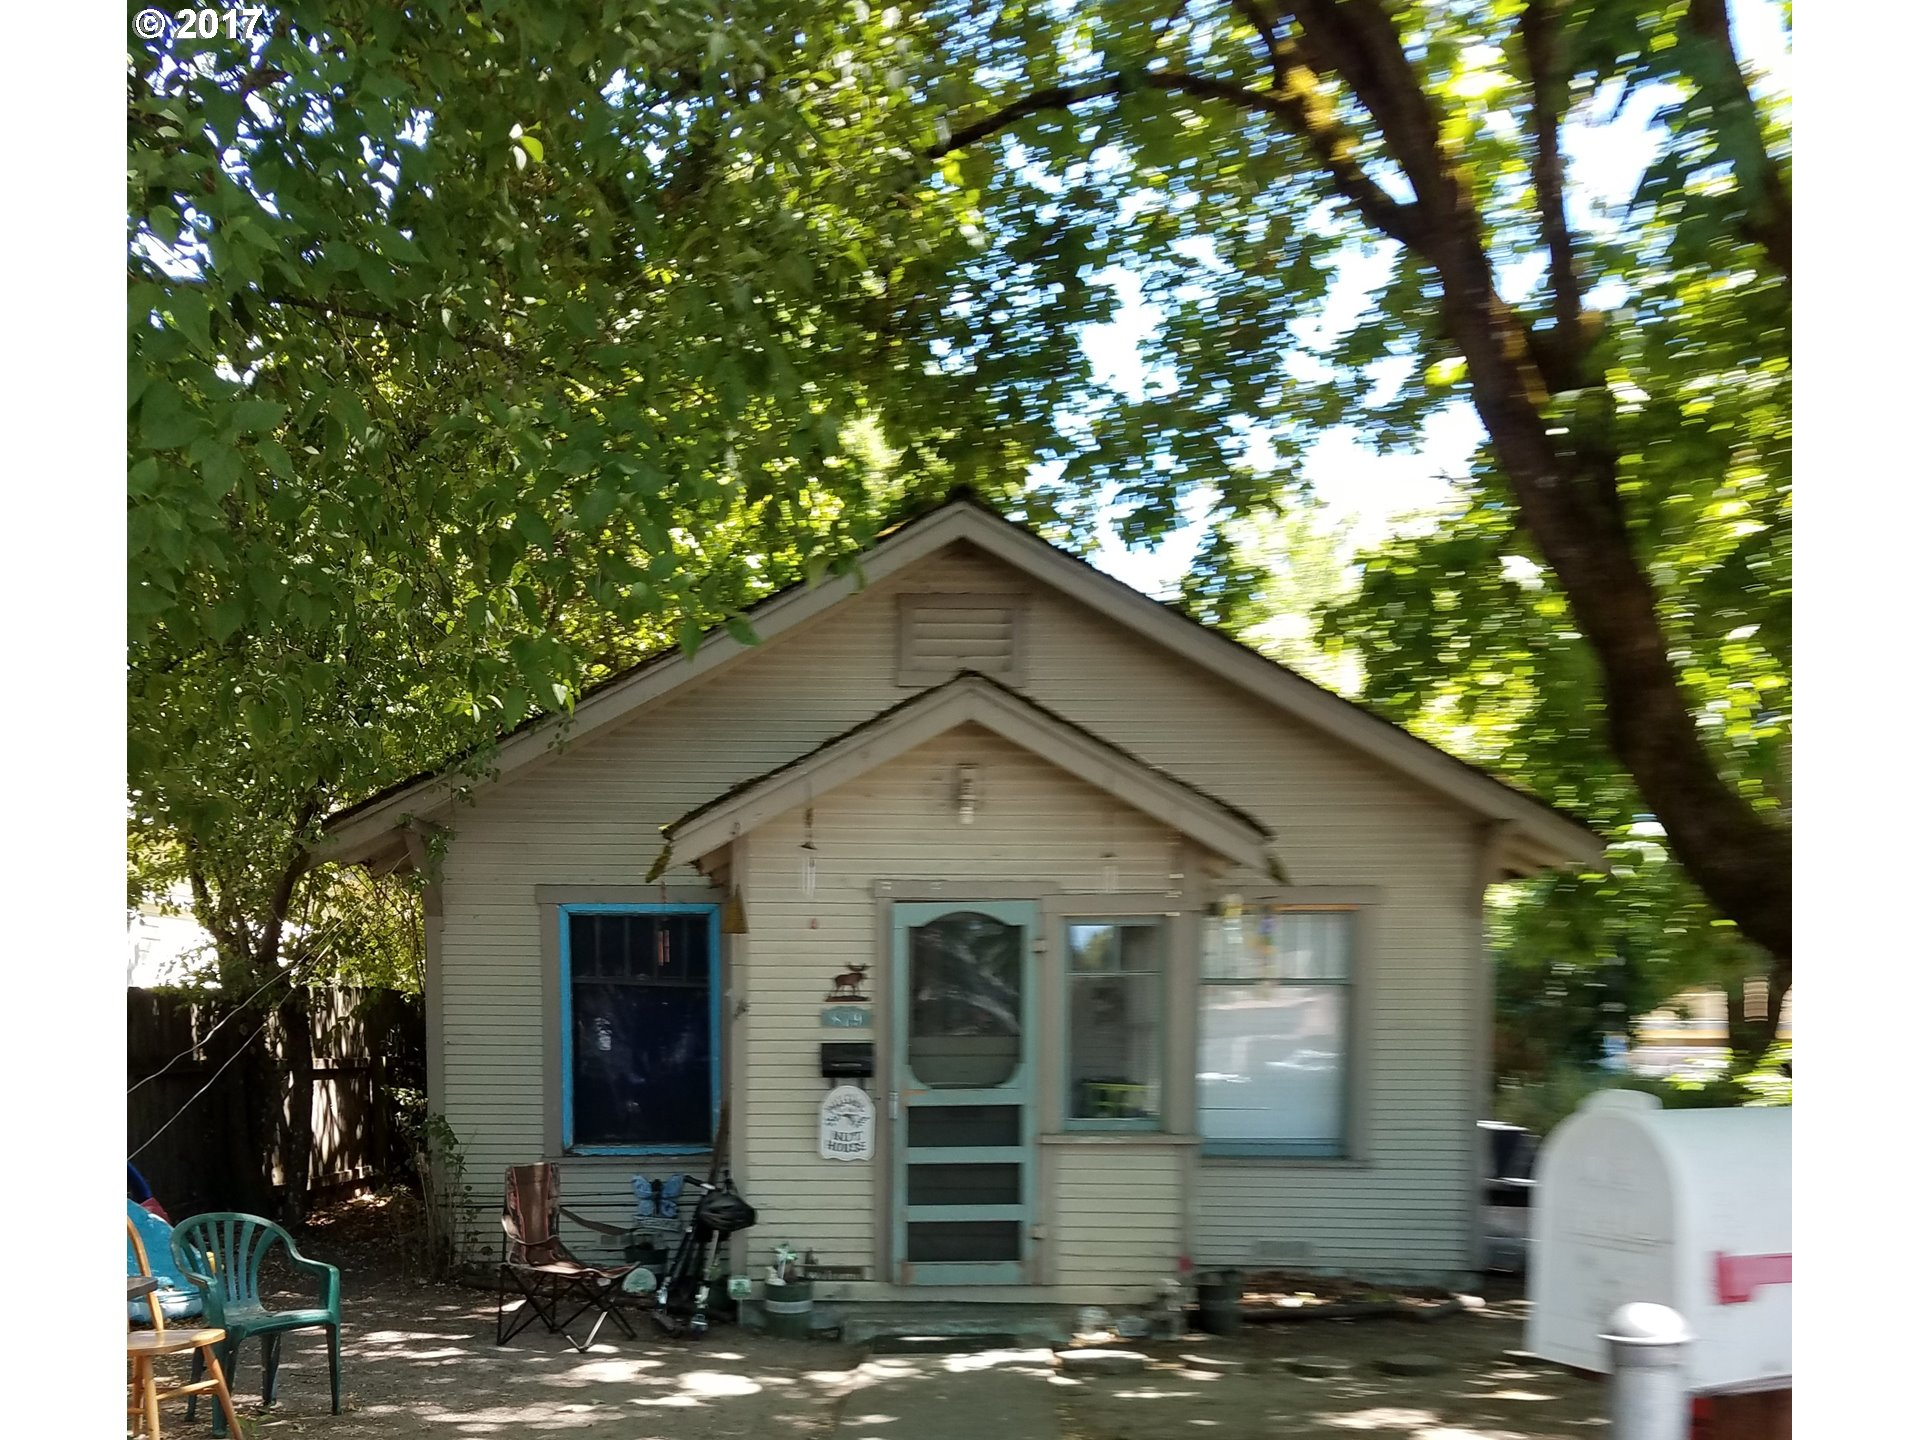 Williams, OR 3 Bedroom Home For Sale